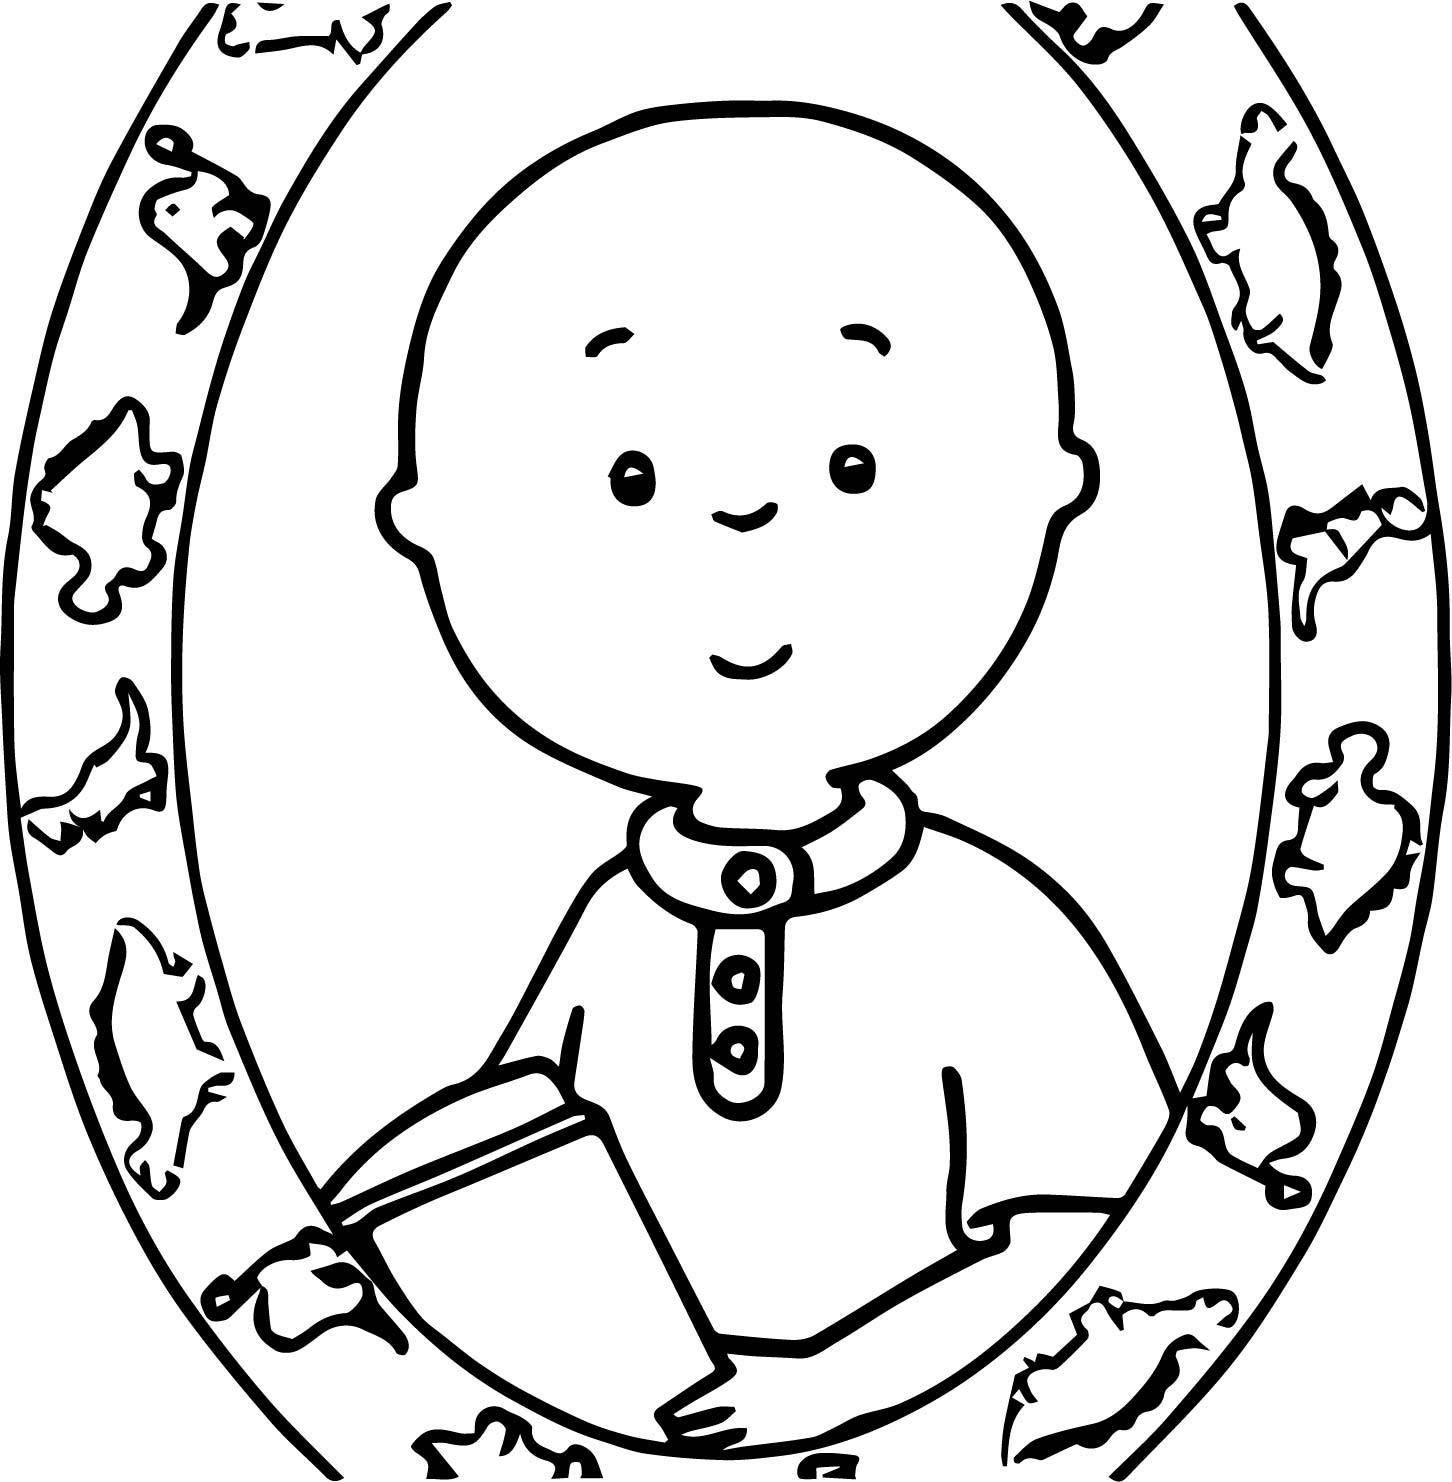 Caillou Coloring Page Wecoloringpage 009